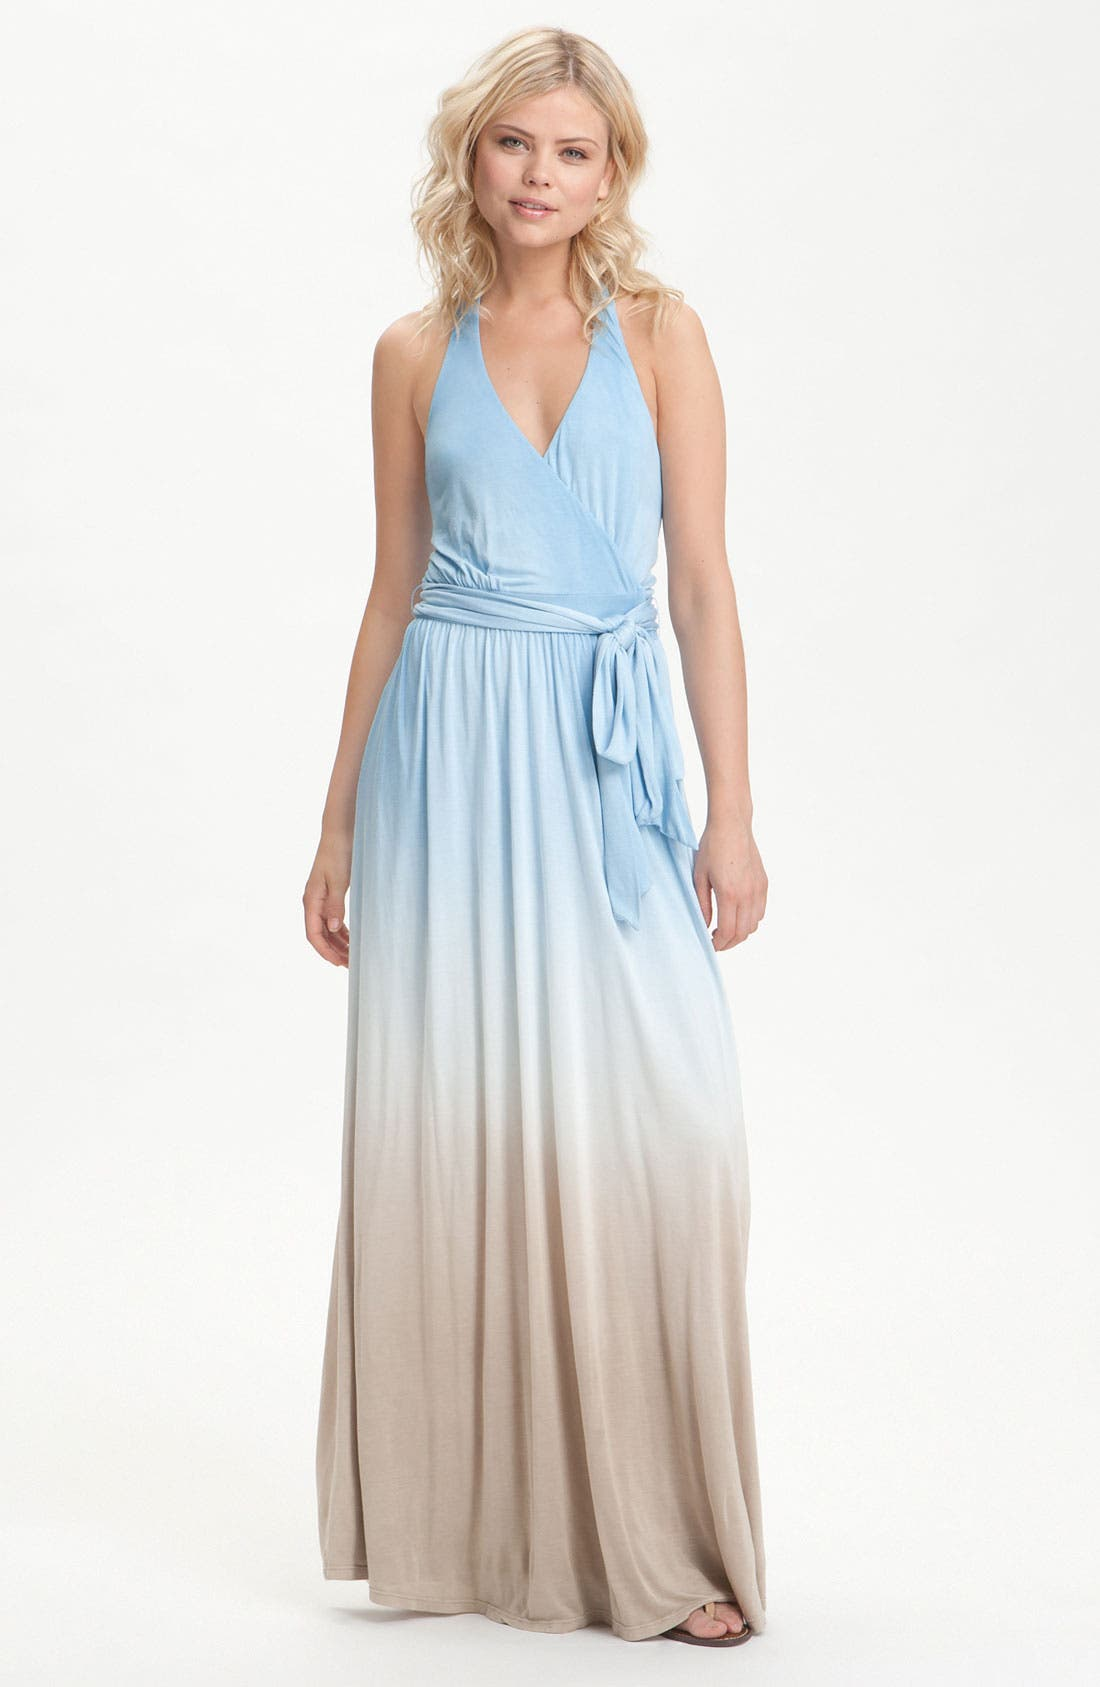 Alternate Image 1 Selected - Young, Fabulous & Broke 'Jeremiah' Ombré Halter Maxi Dress